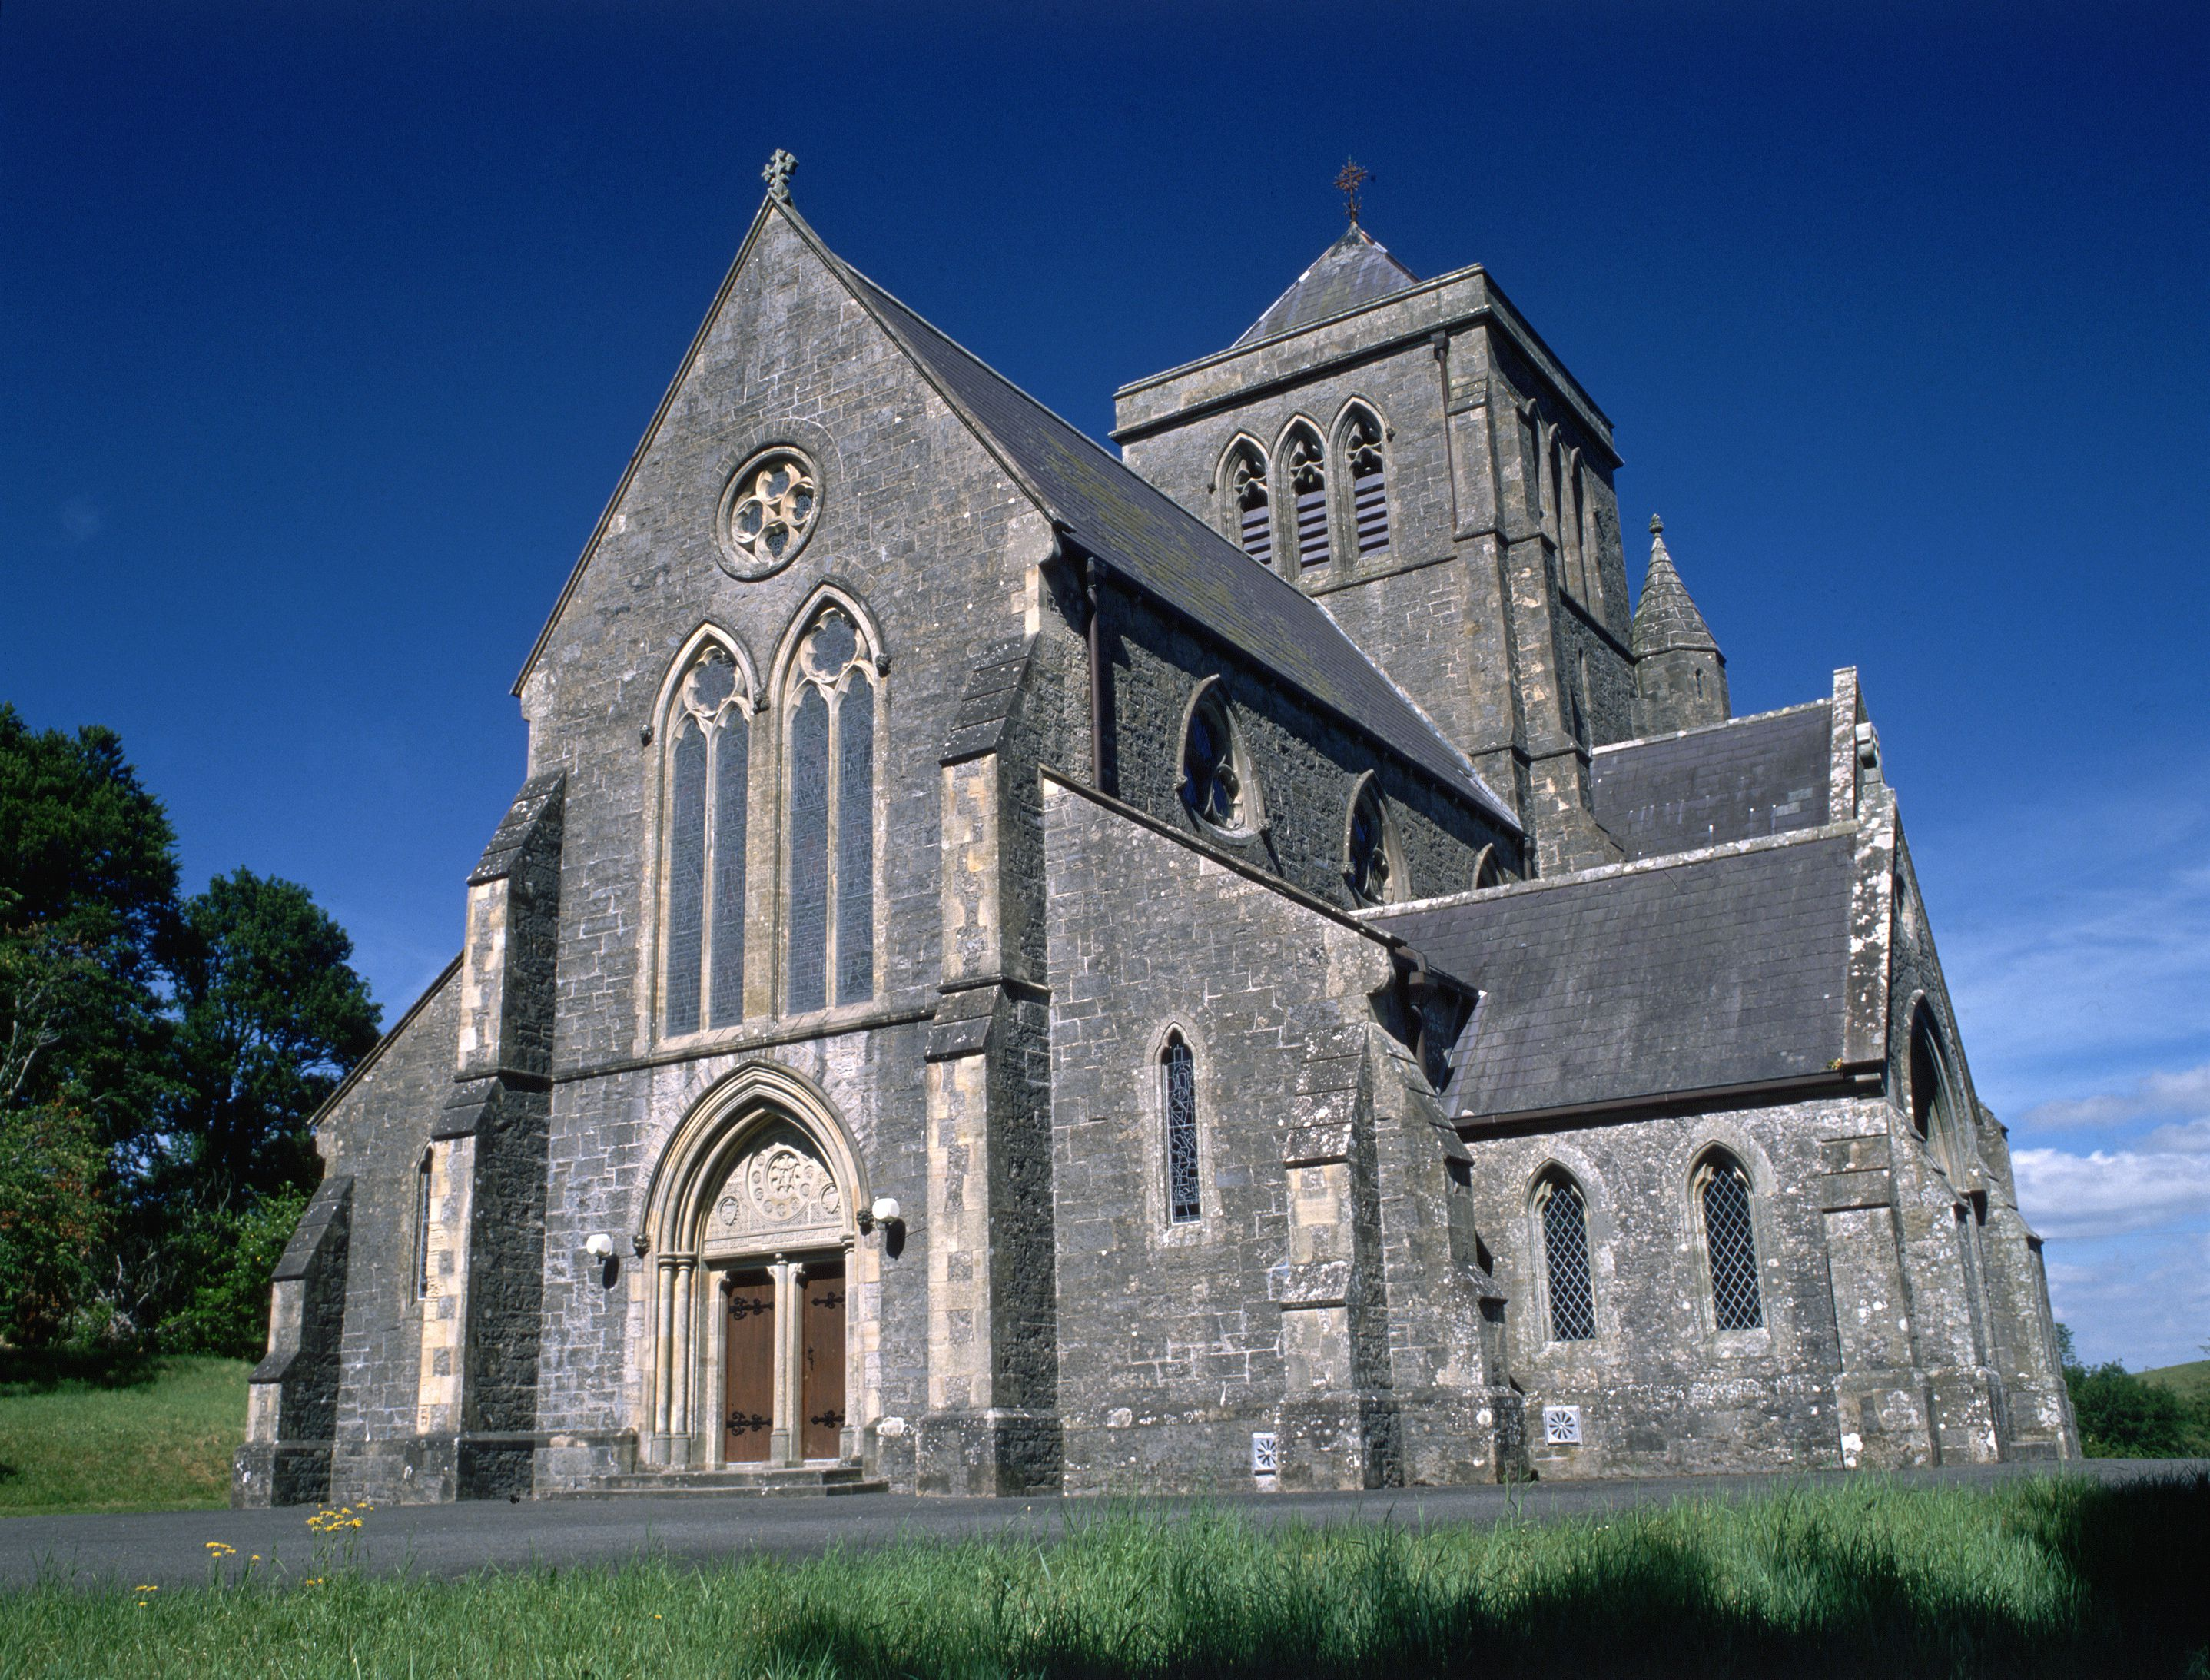 The Attractions and Sights of the Ulster County of Cavan